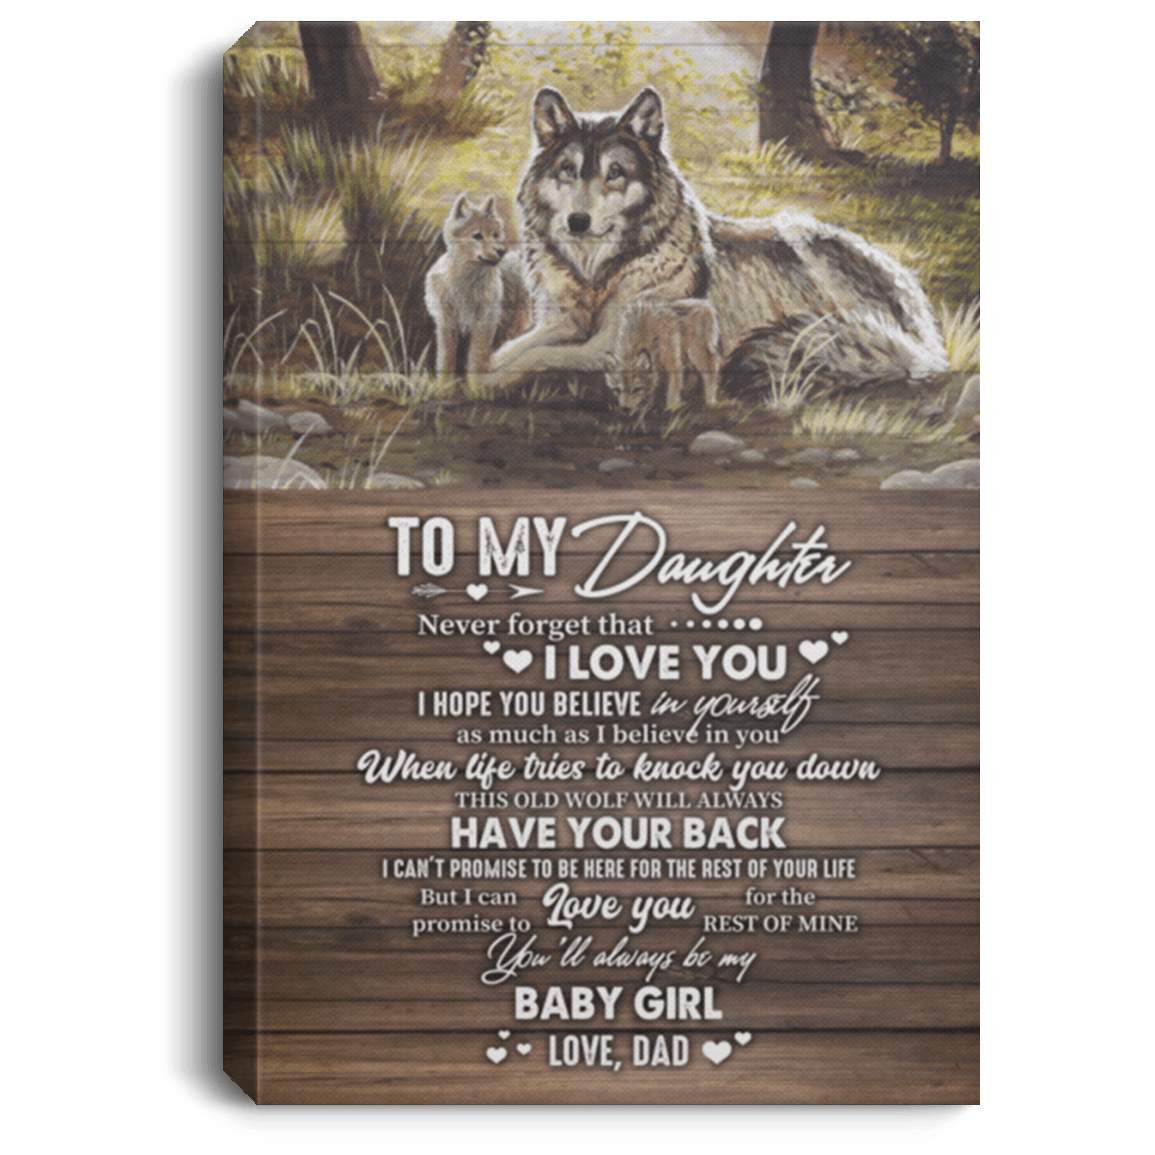 Download To My Daughter Poster | To My Daughter Never Forget That I ...